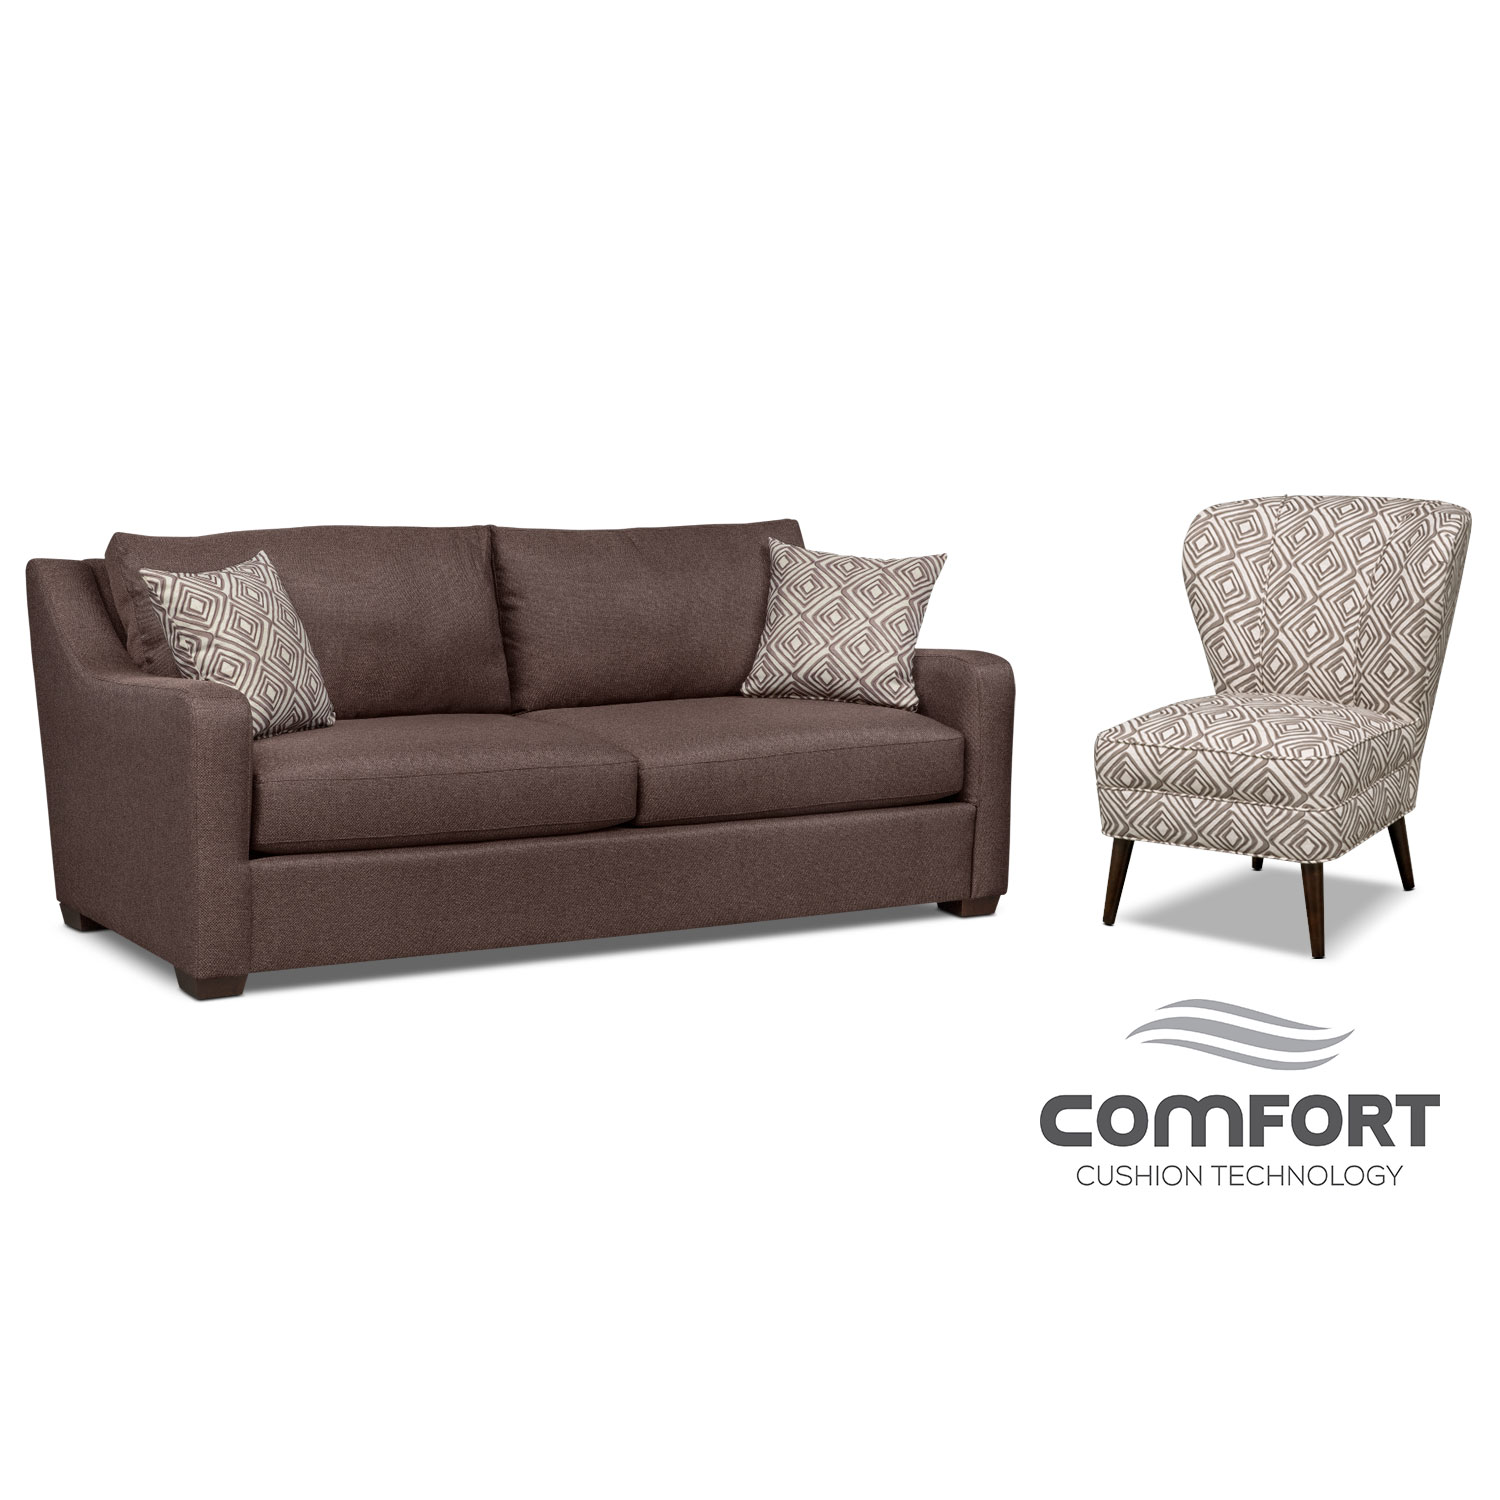 Living Room Furniture - Jules Comfort Sofa and Accent Chair Set - Brown